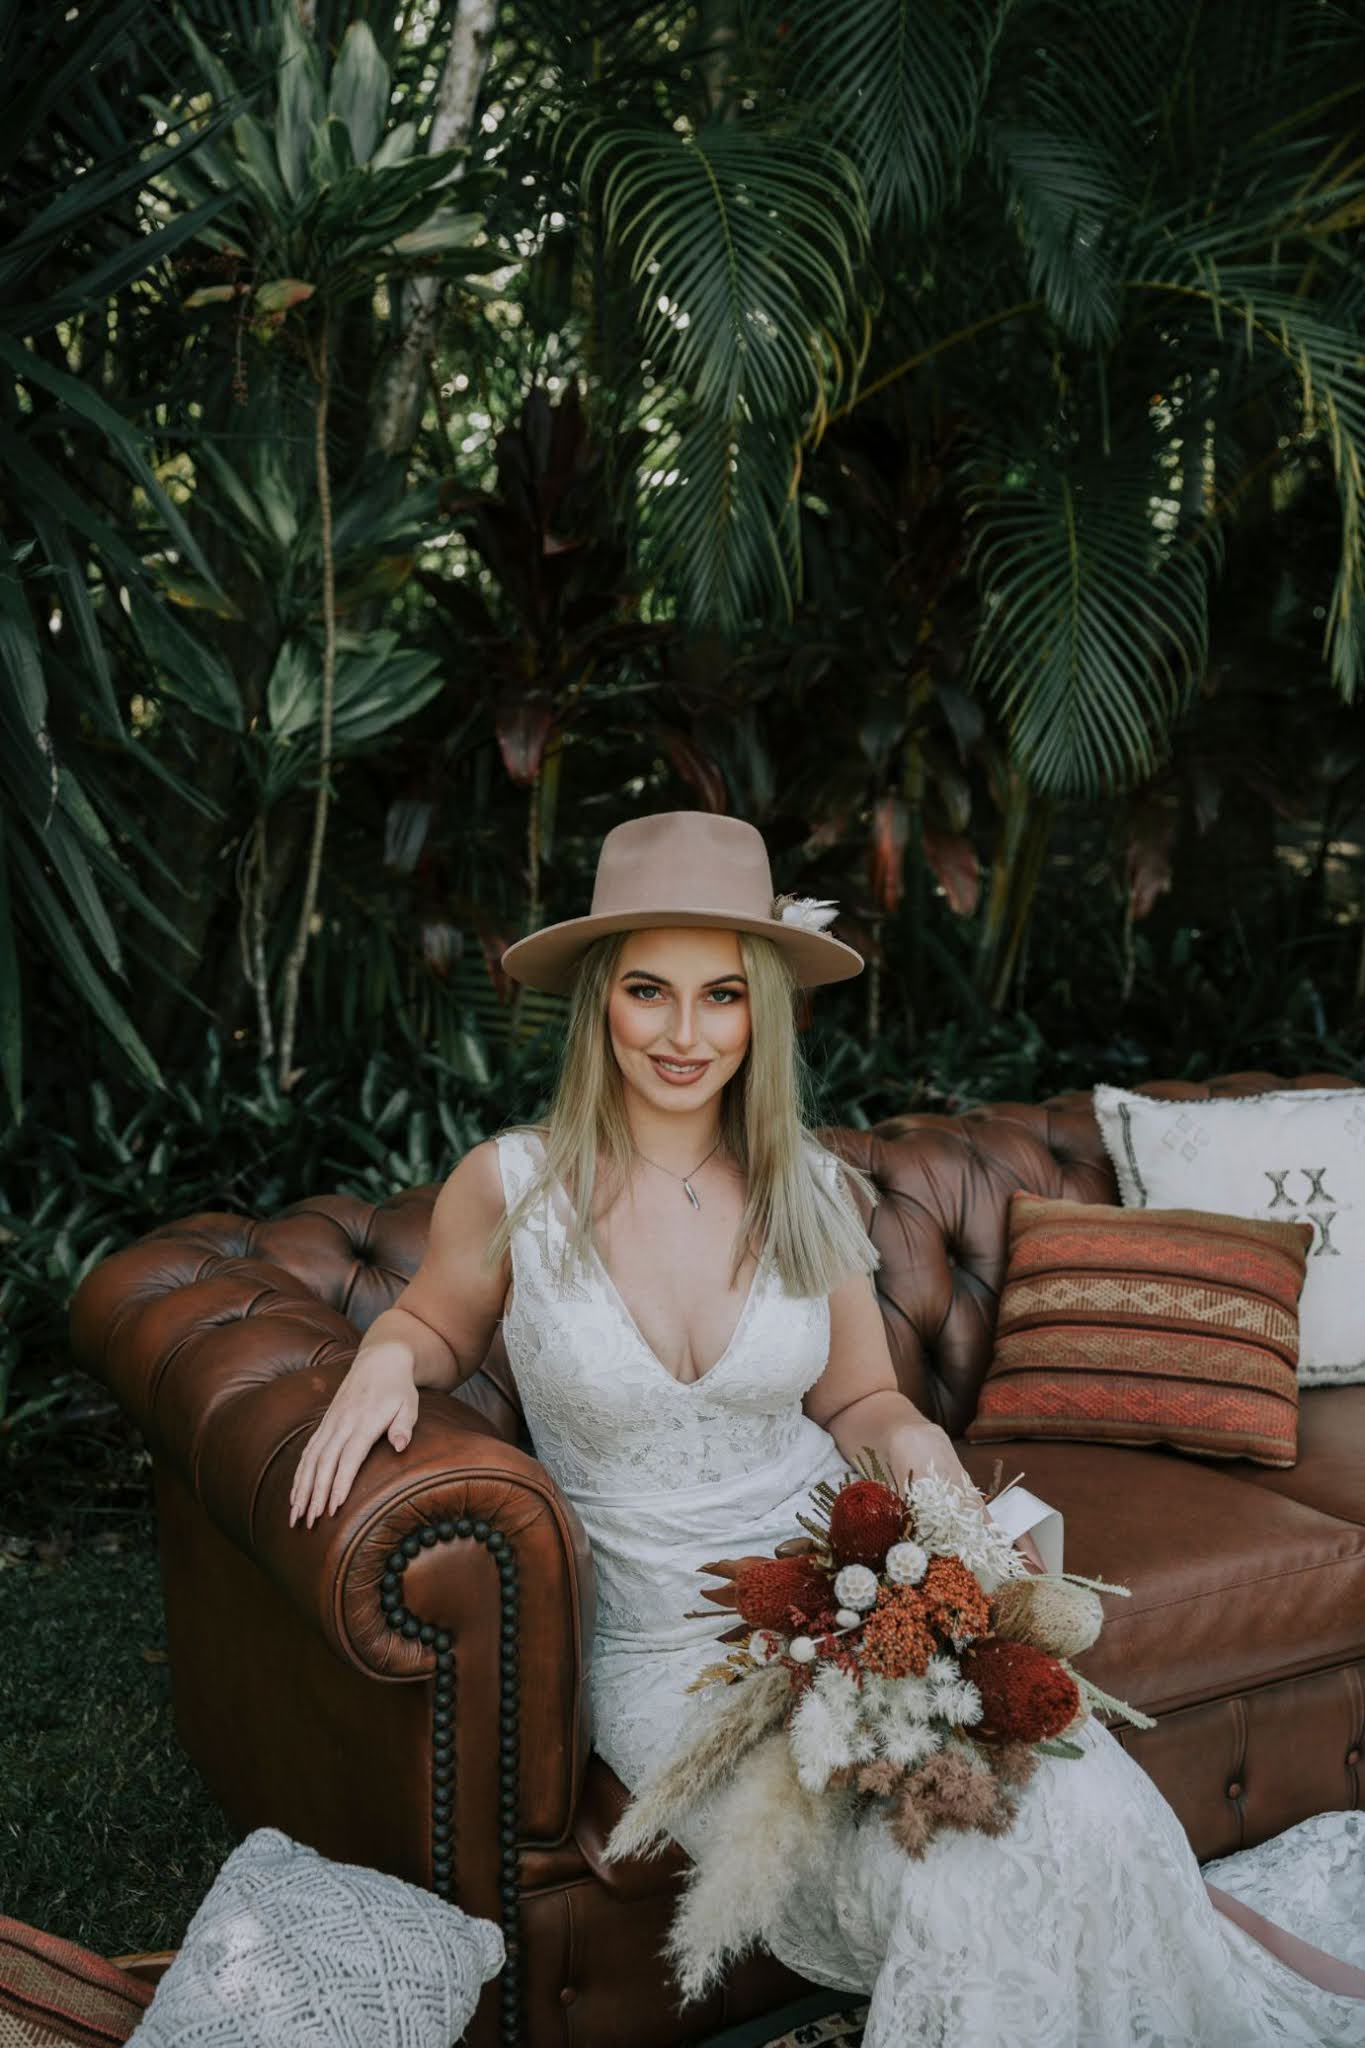 Atomic Butterfly Photography florals leather couch hat cake venue styling